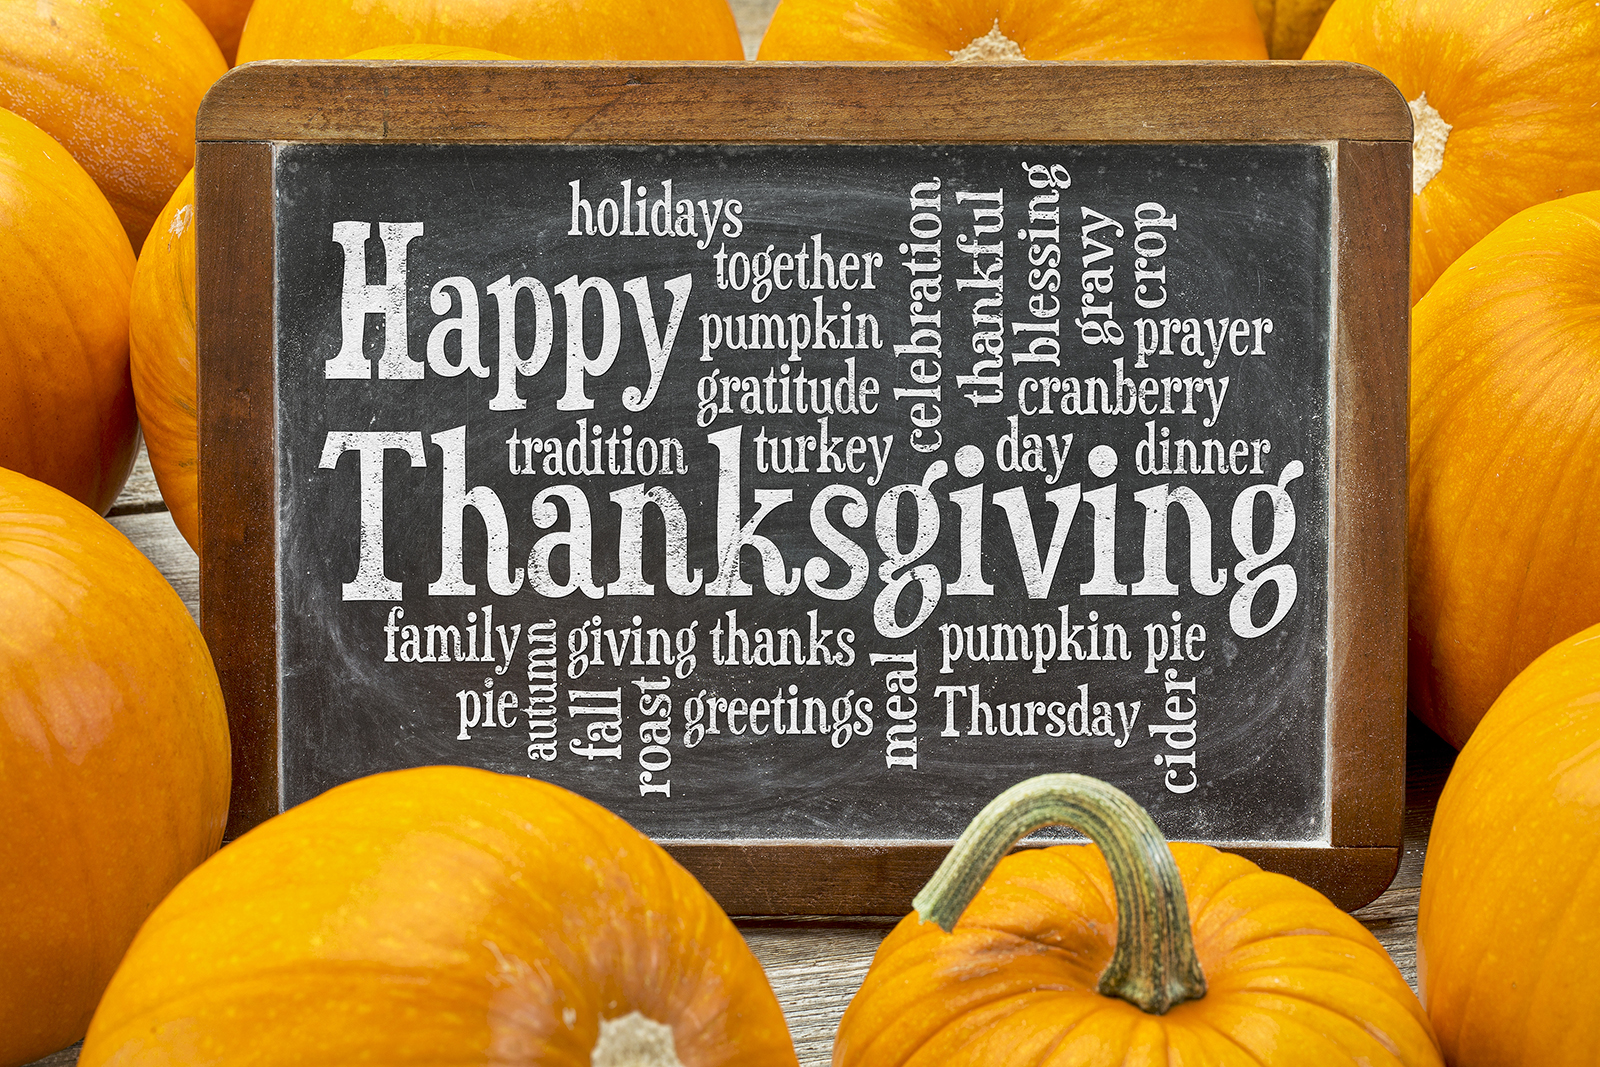 A Very Happy Thanksgiving